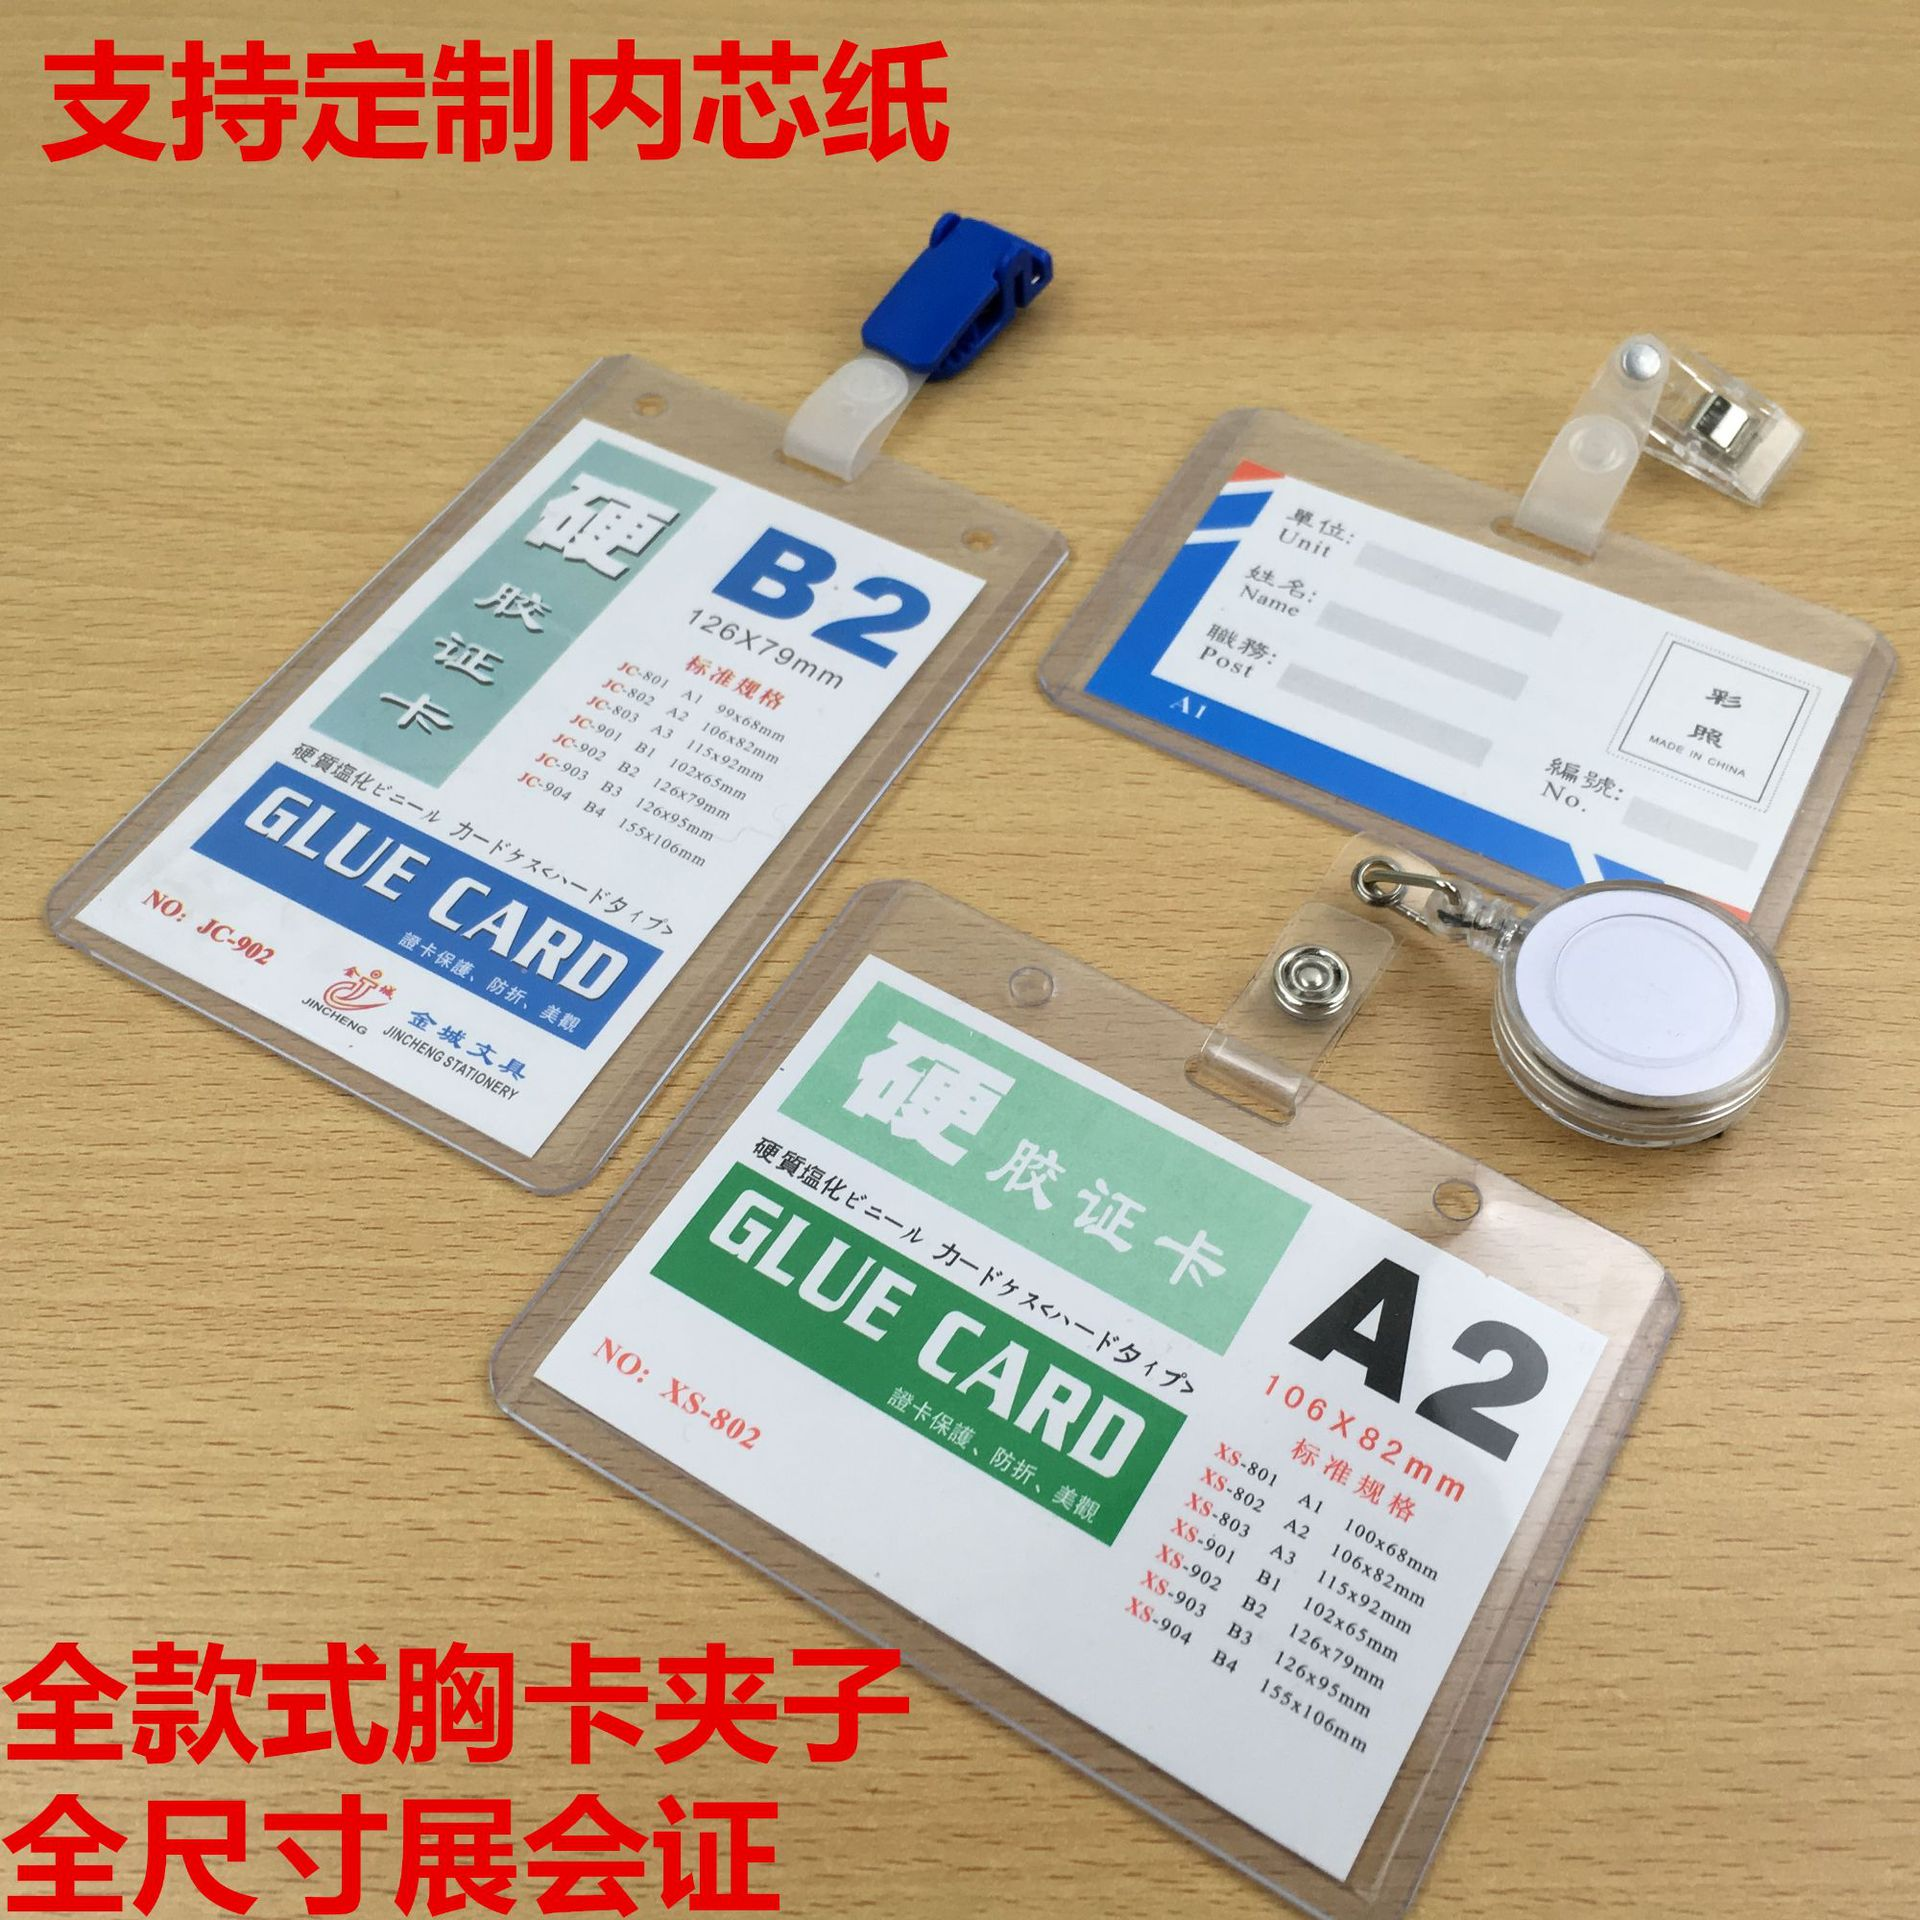 PVC Work Card Plastic Students Badge Customizable Certificate Card Sleeve Clip Transparent Label